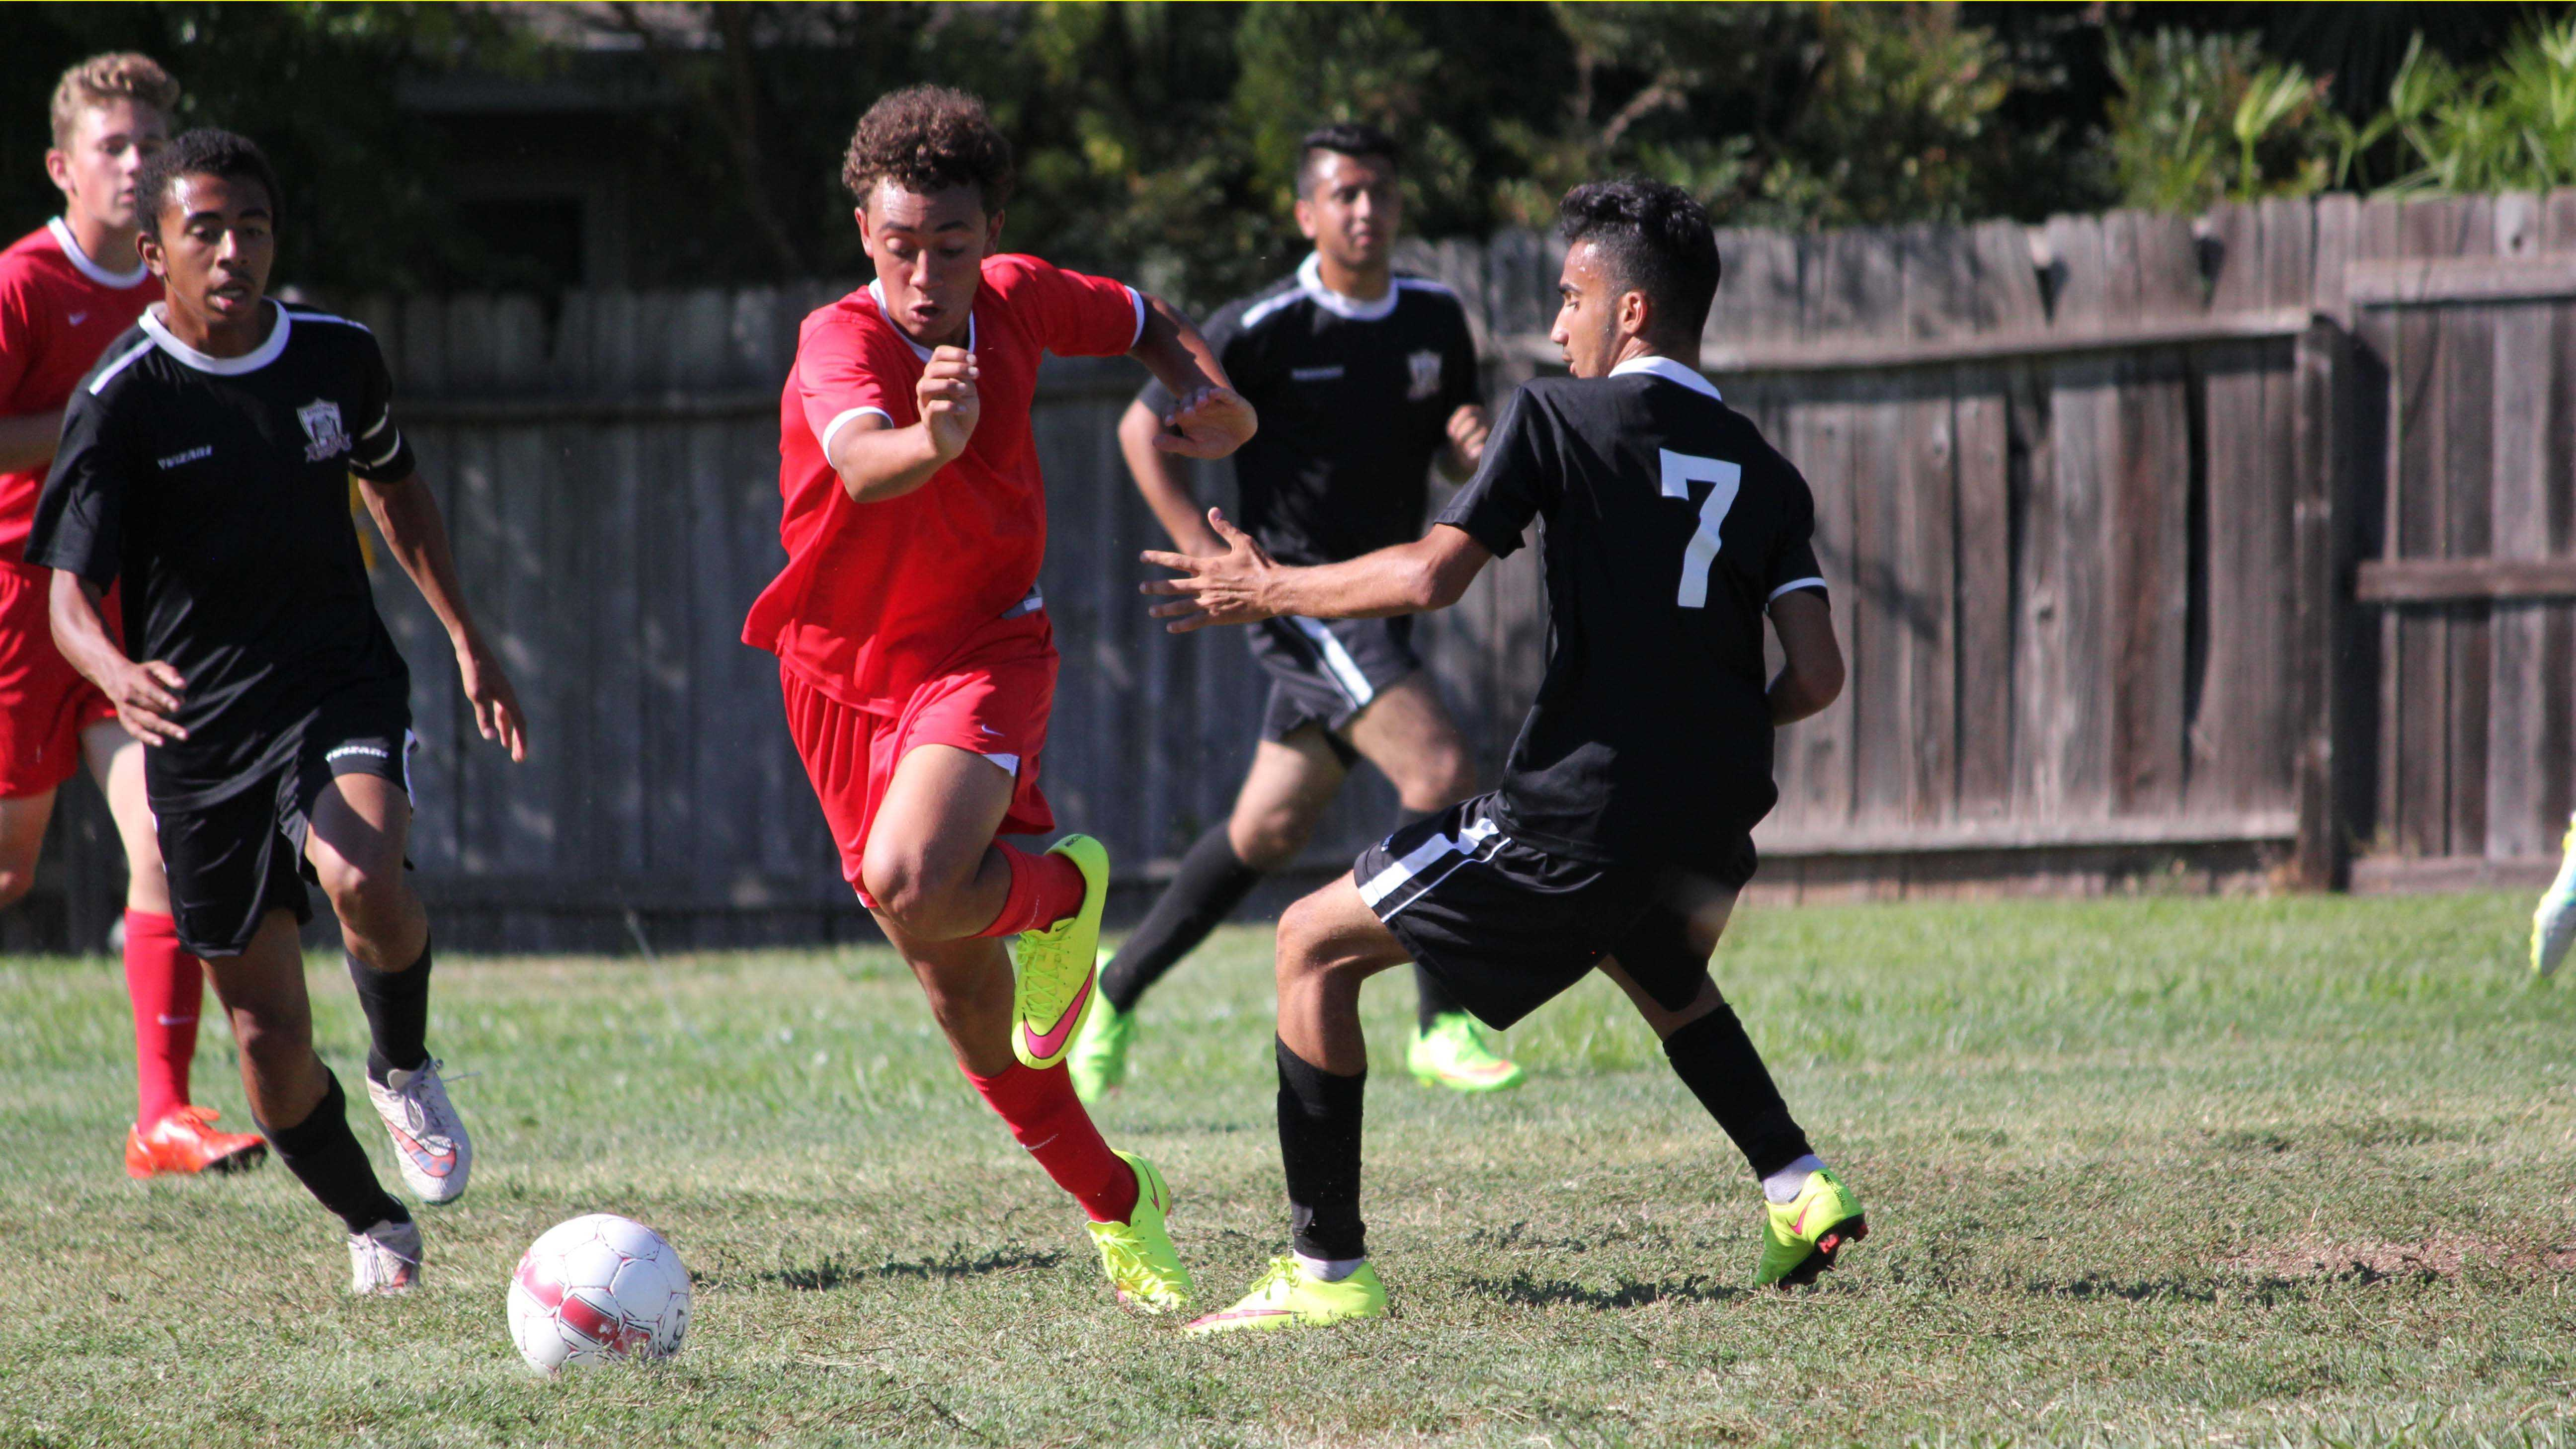 Sophomore B.J. Askew (center) scored within the first six minutes of the Cavs' game against Encina High School and finished with two more goals, completing a hat track, in the Cavs' second game of the season, which resulted in a tie.